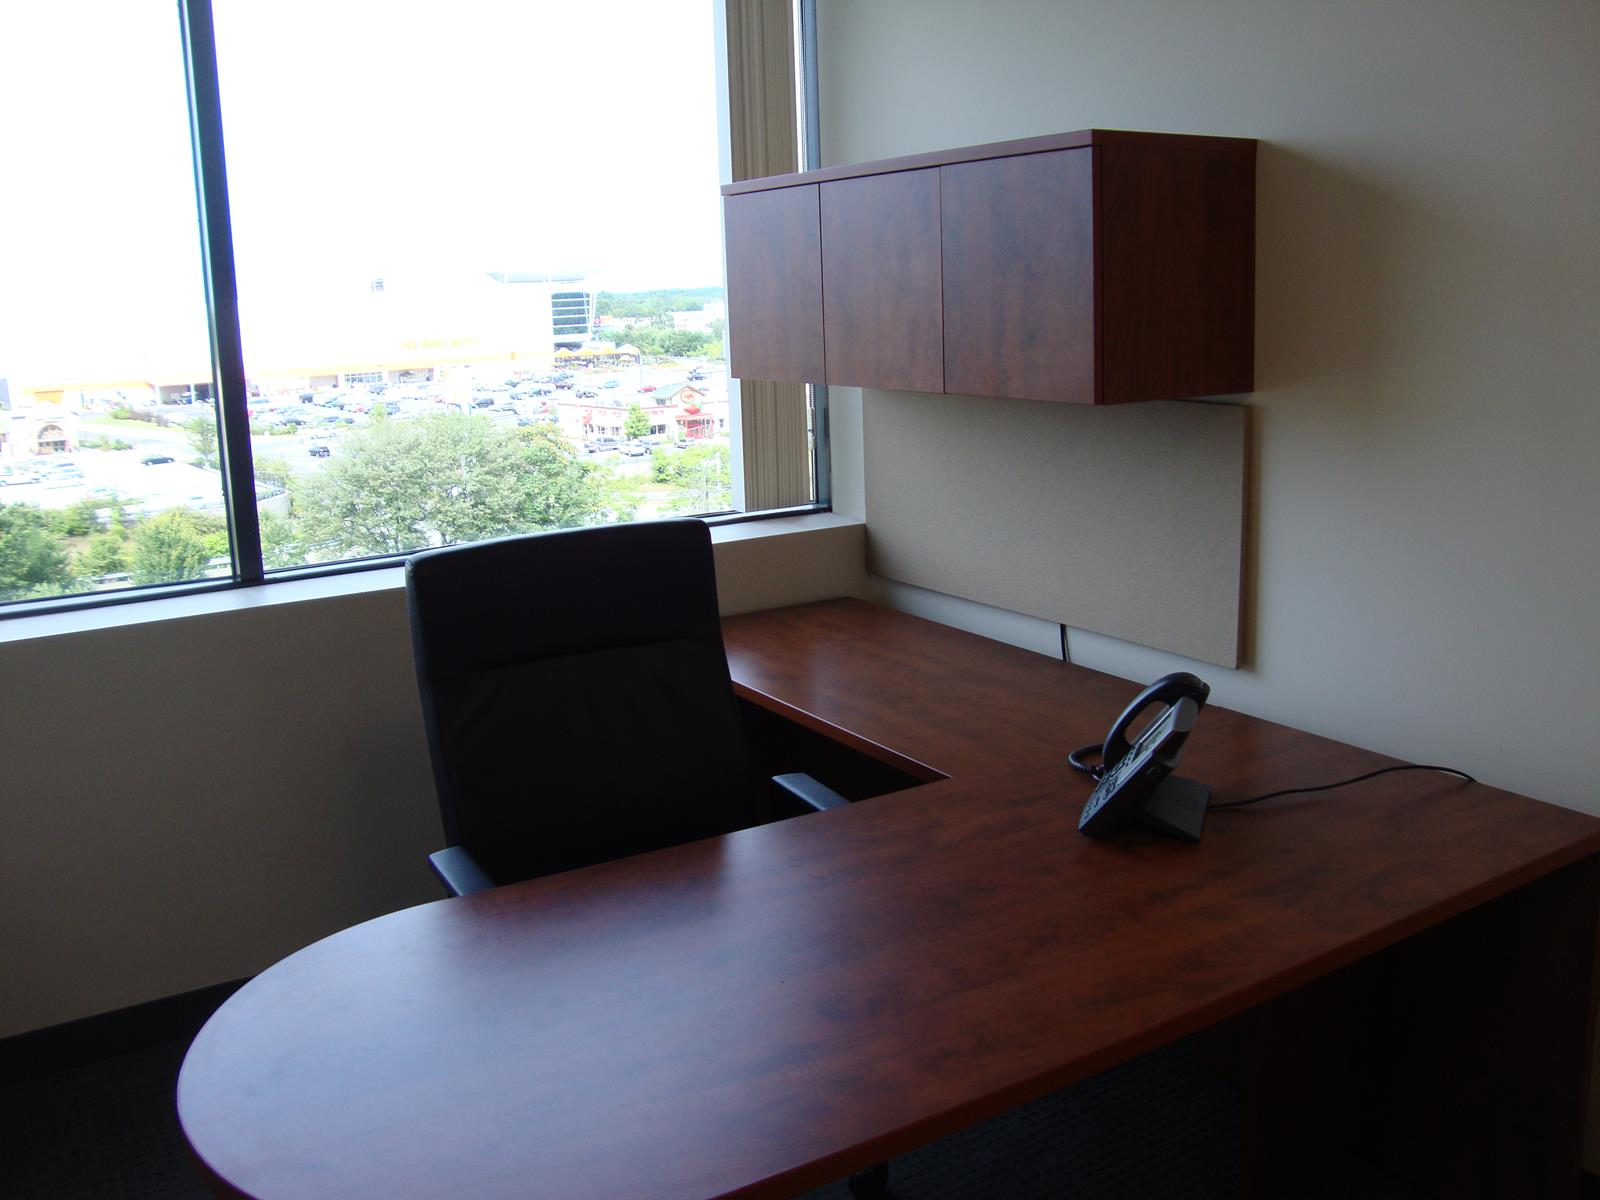 peartreeofficefurniture_peartreeofficefurniture_dsc07075.jpg